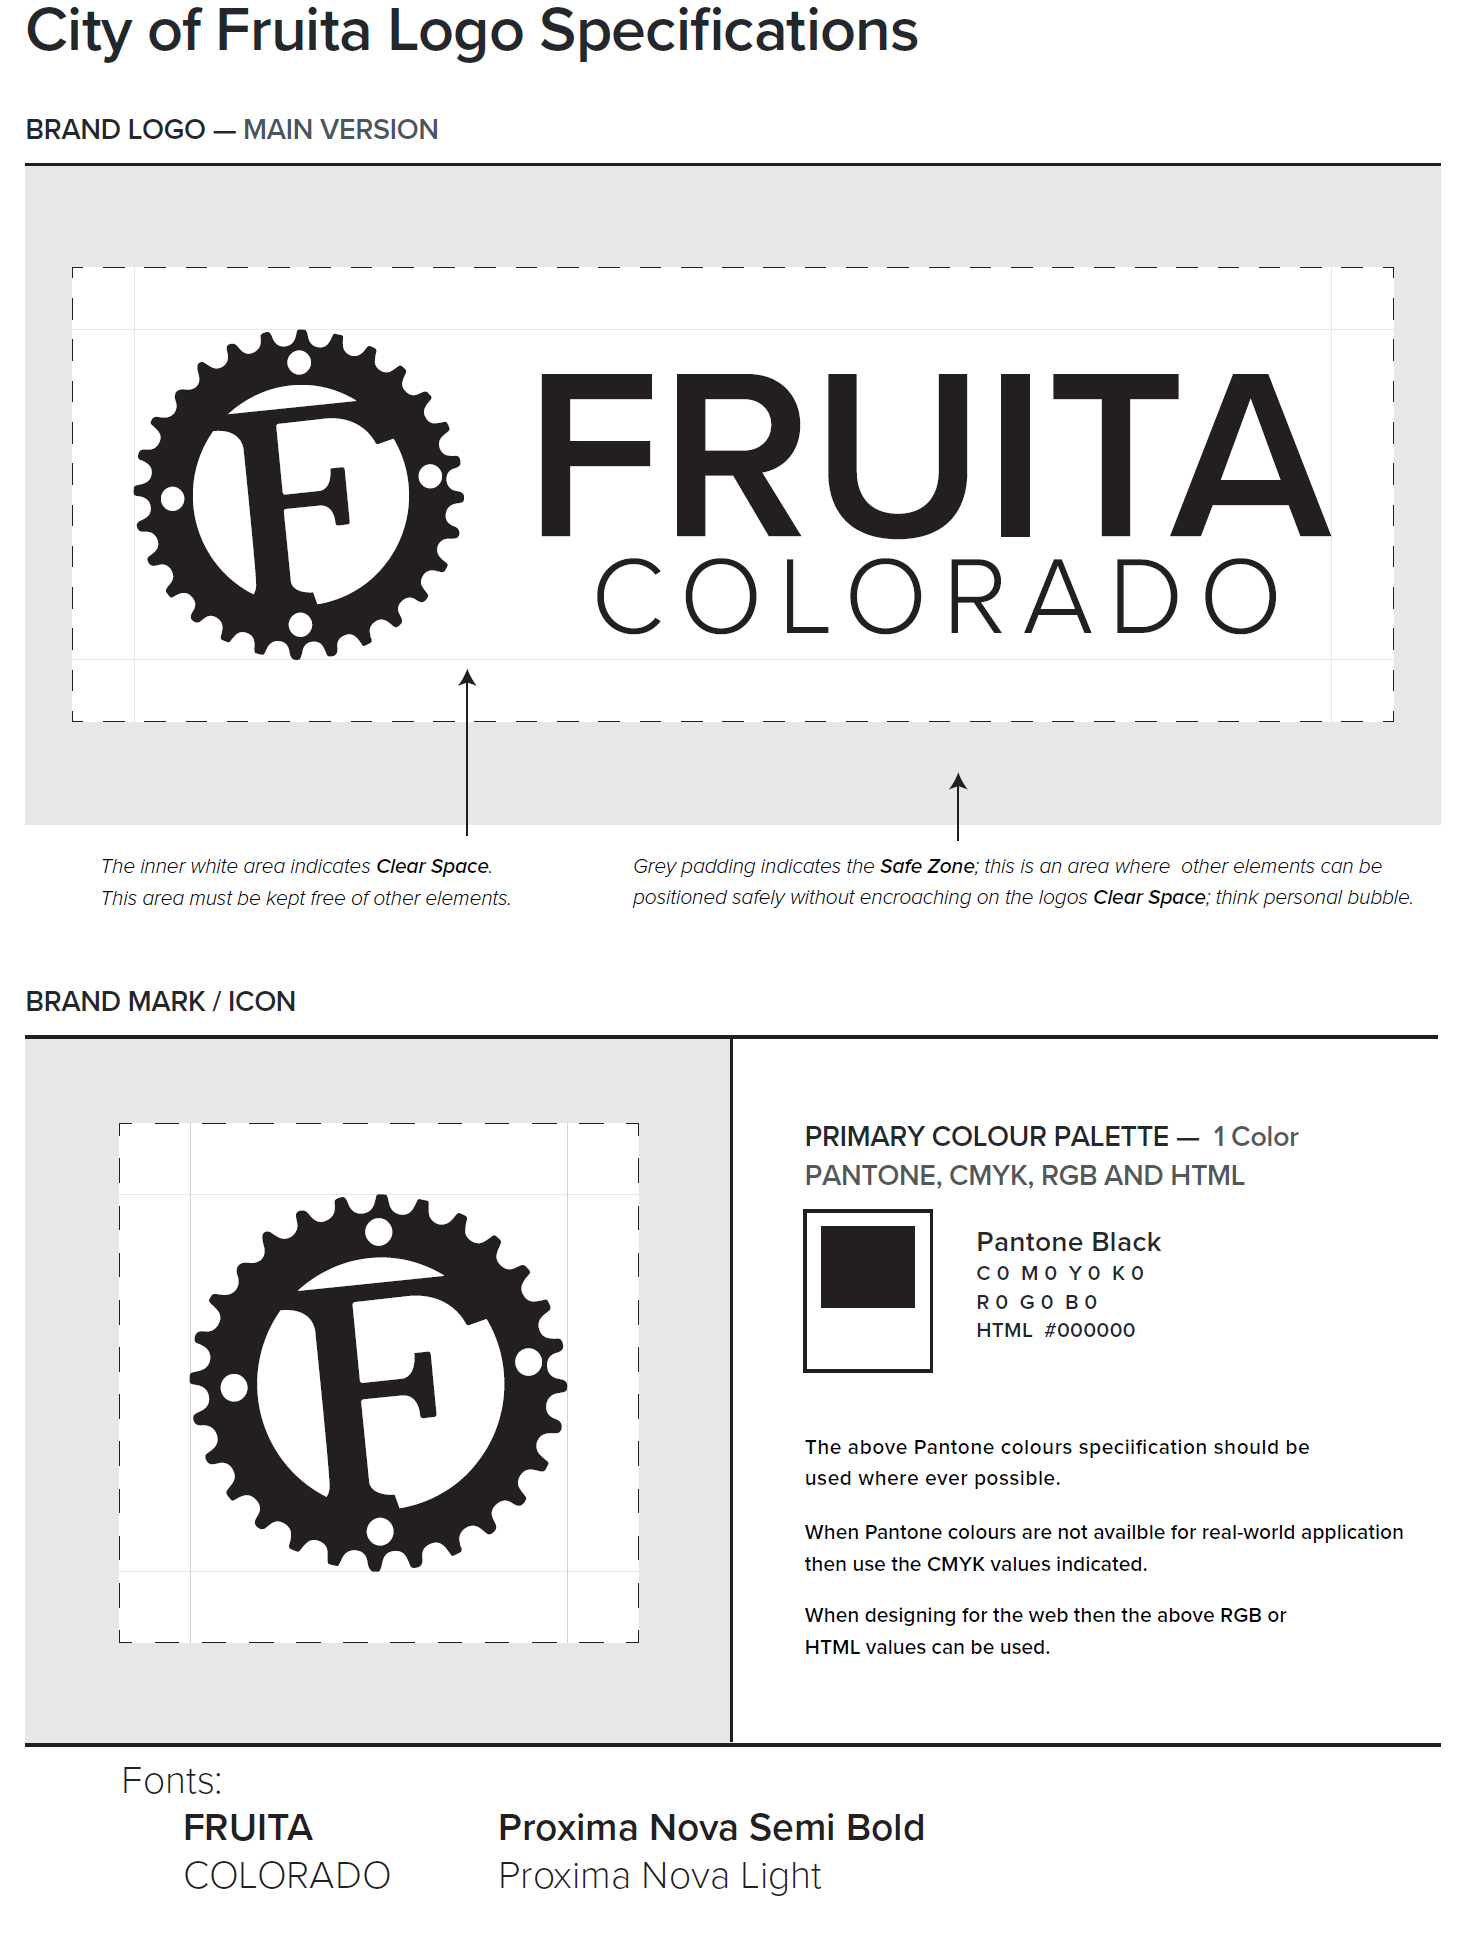 Fruita Colorado Trademark License Agreement City Of Fruita Colorado